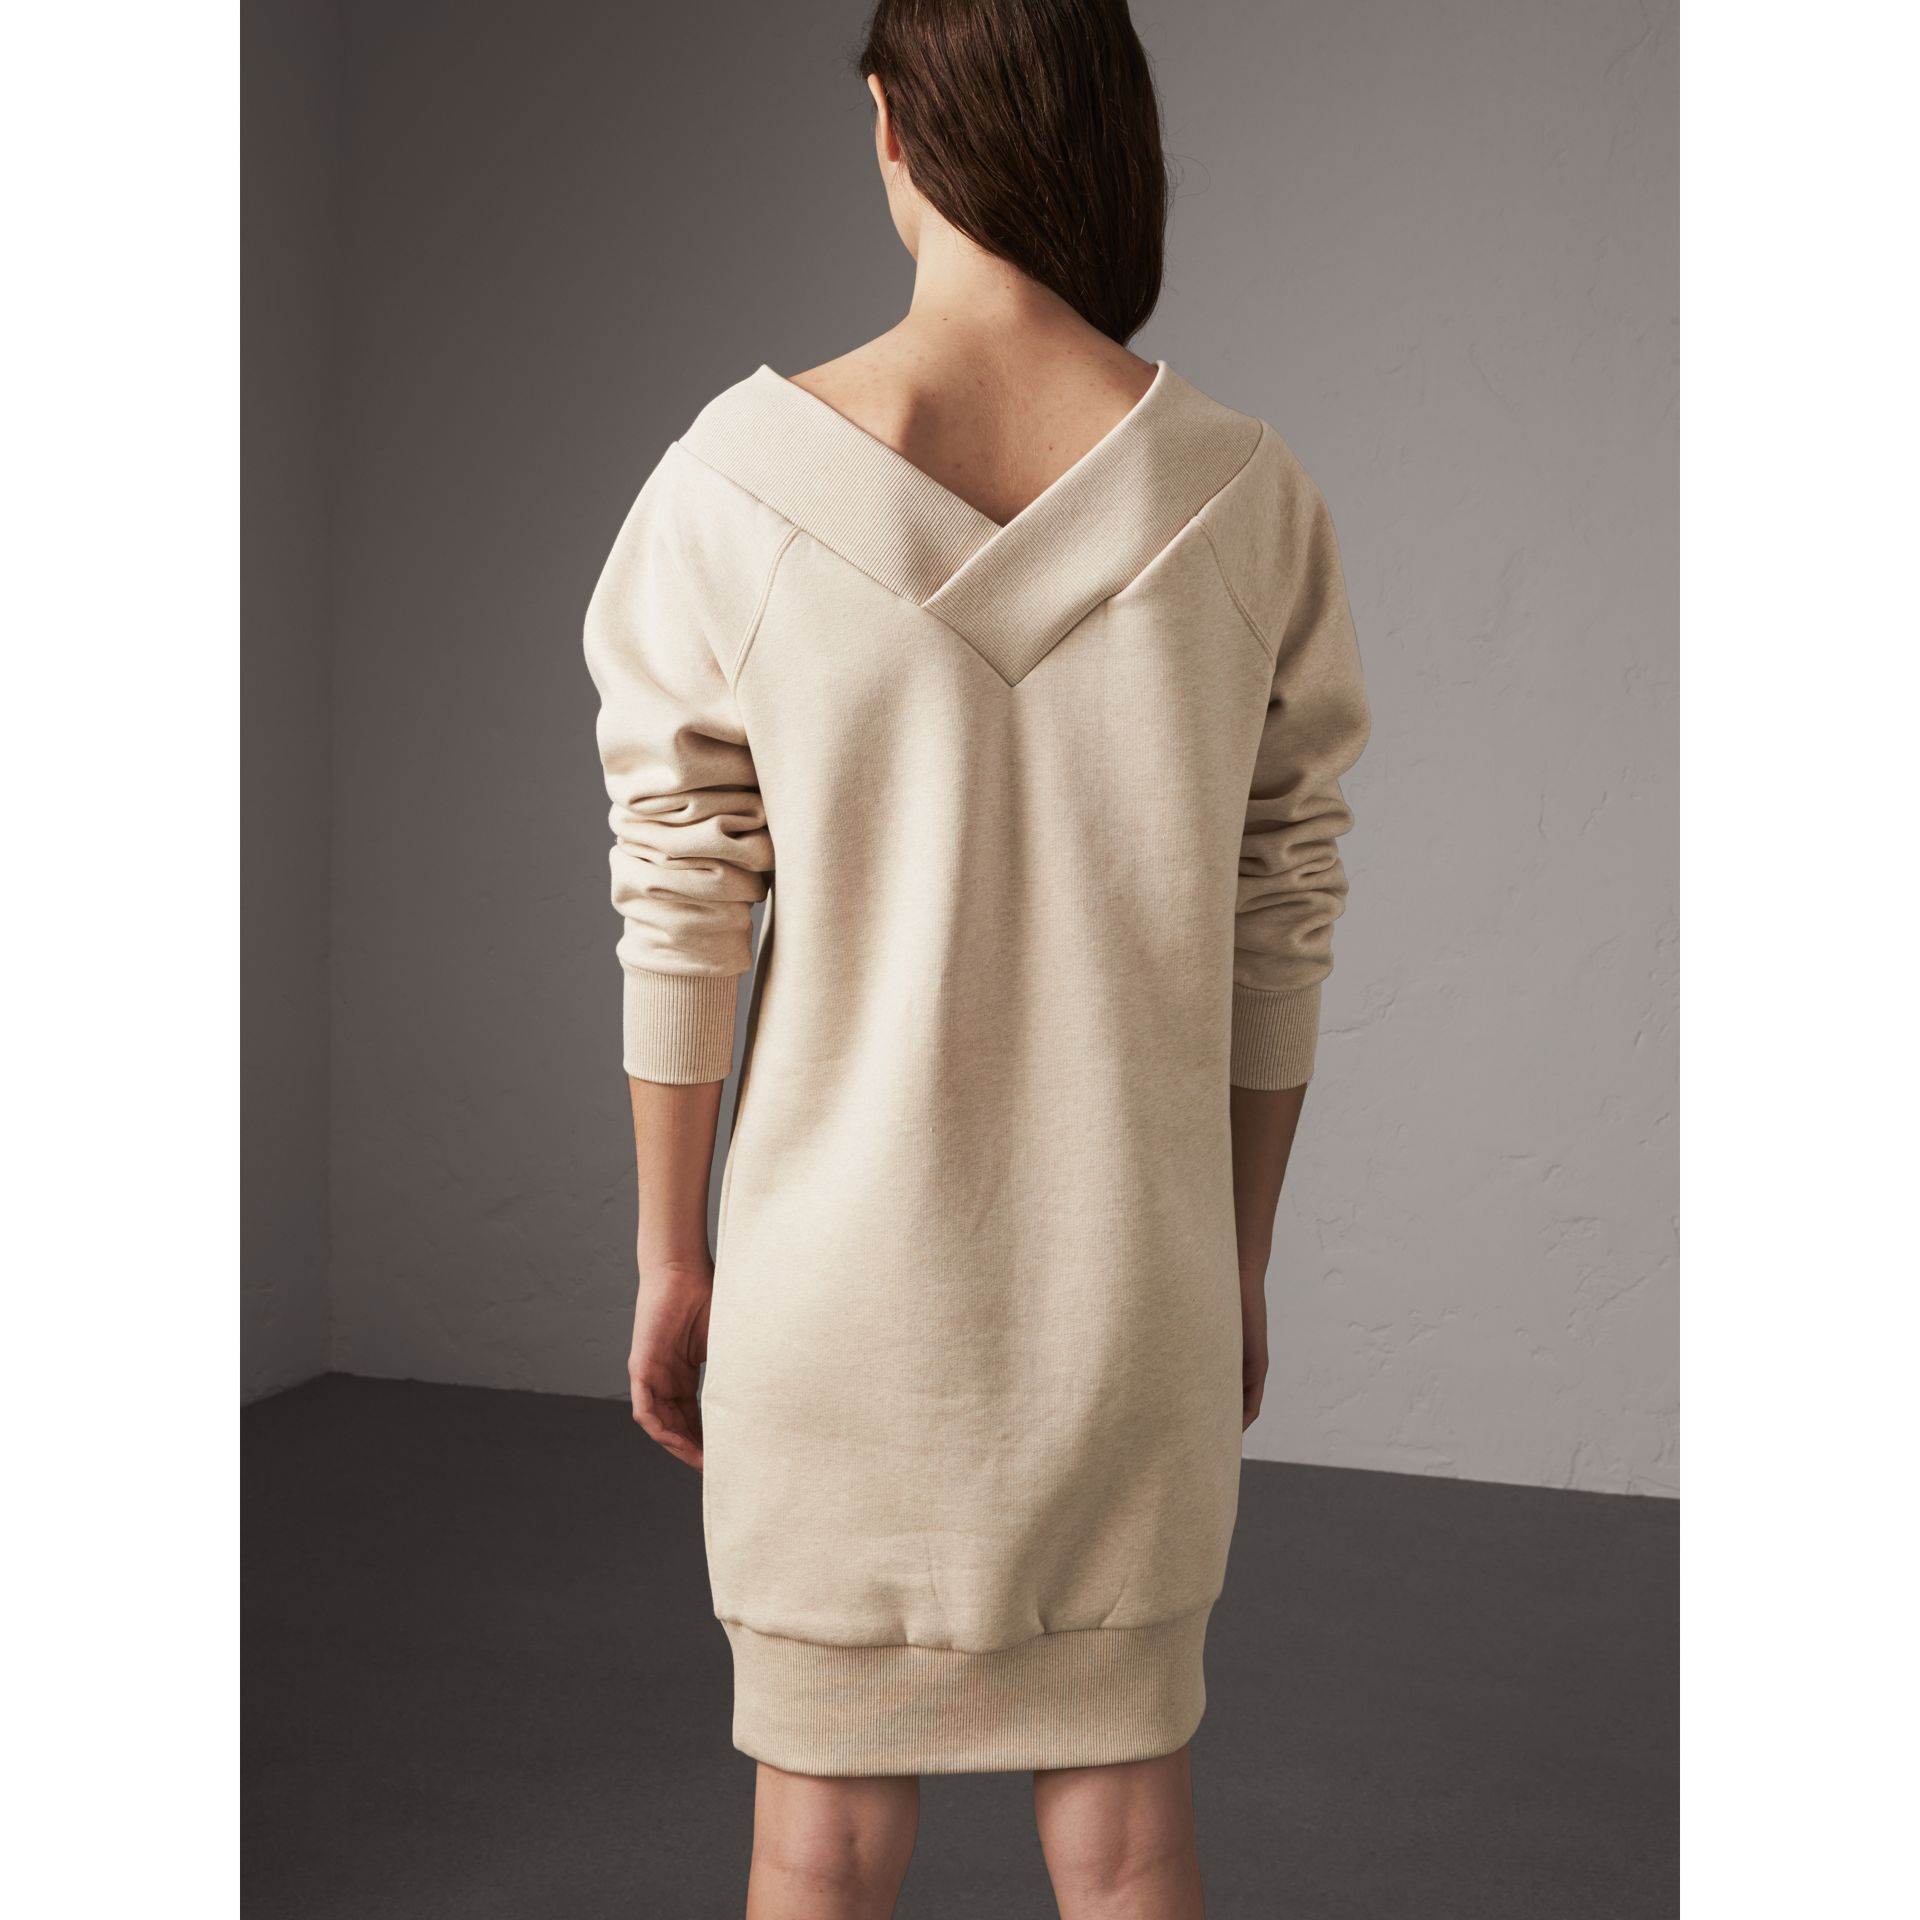 Cotton Blend V-neck Sweater Dress in Oatmeal Melange - Women | Burberry - gallery image 3